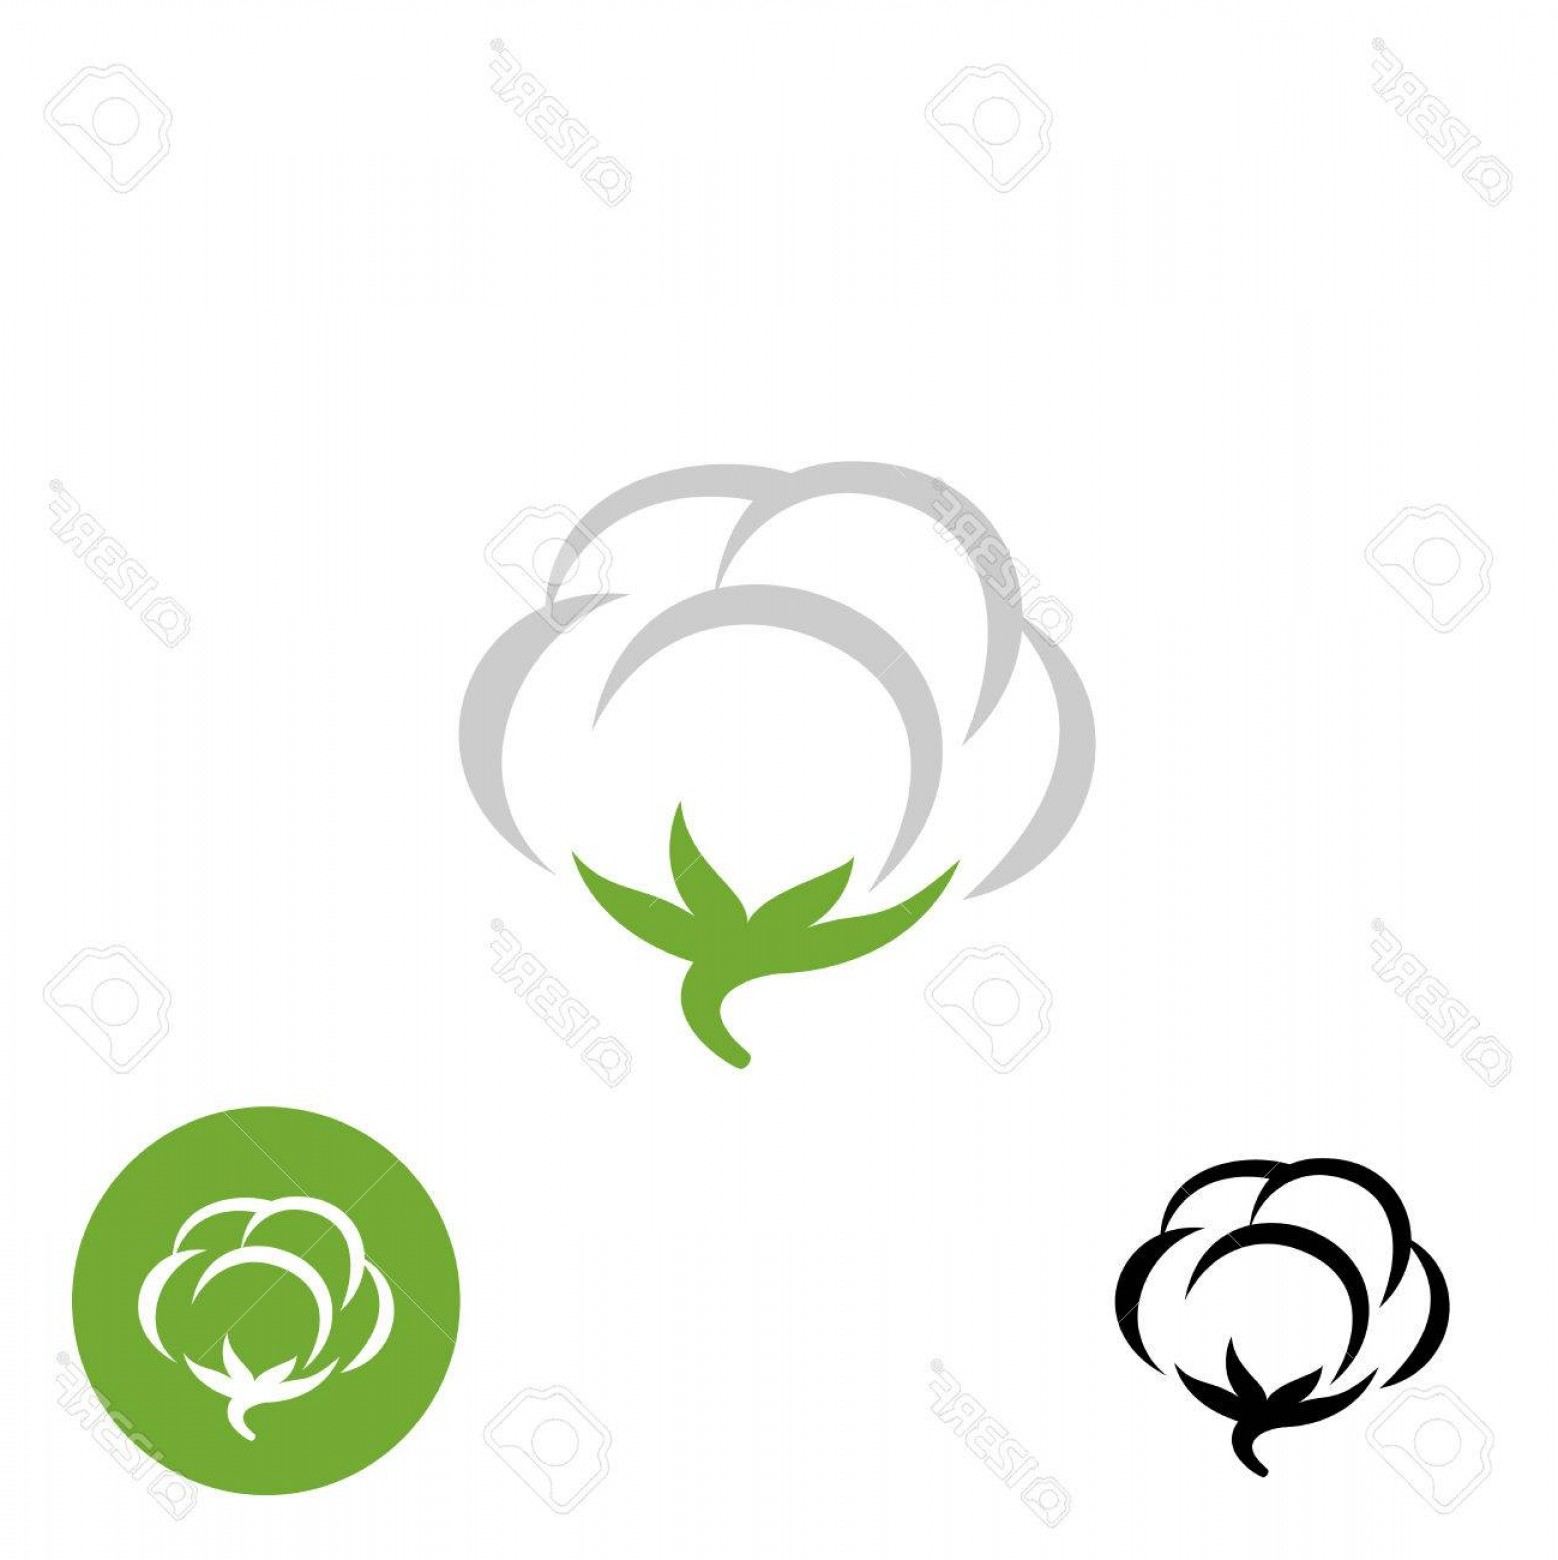 Cotton Vector Graphic: Photostock Vector Cotton Vector Logo With Black And White One Color Variations